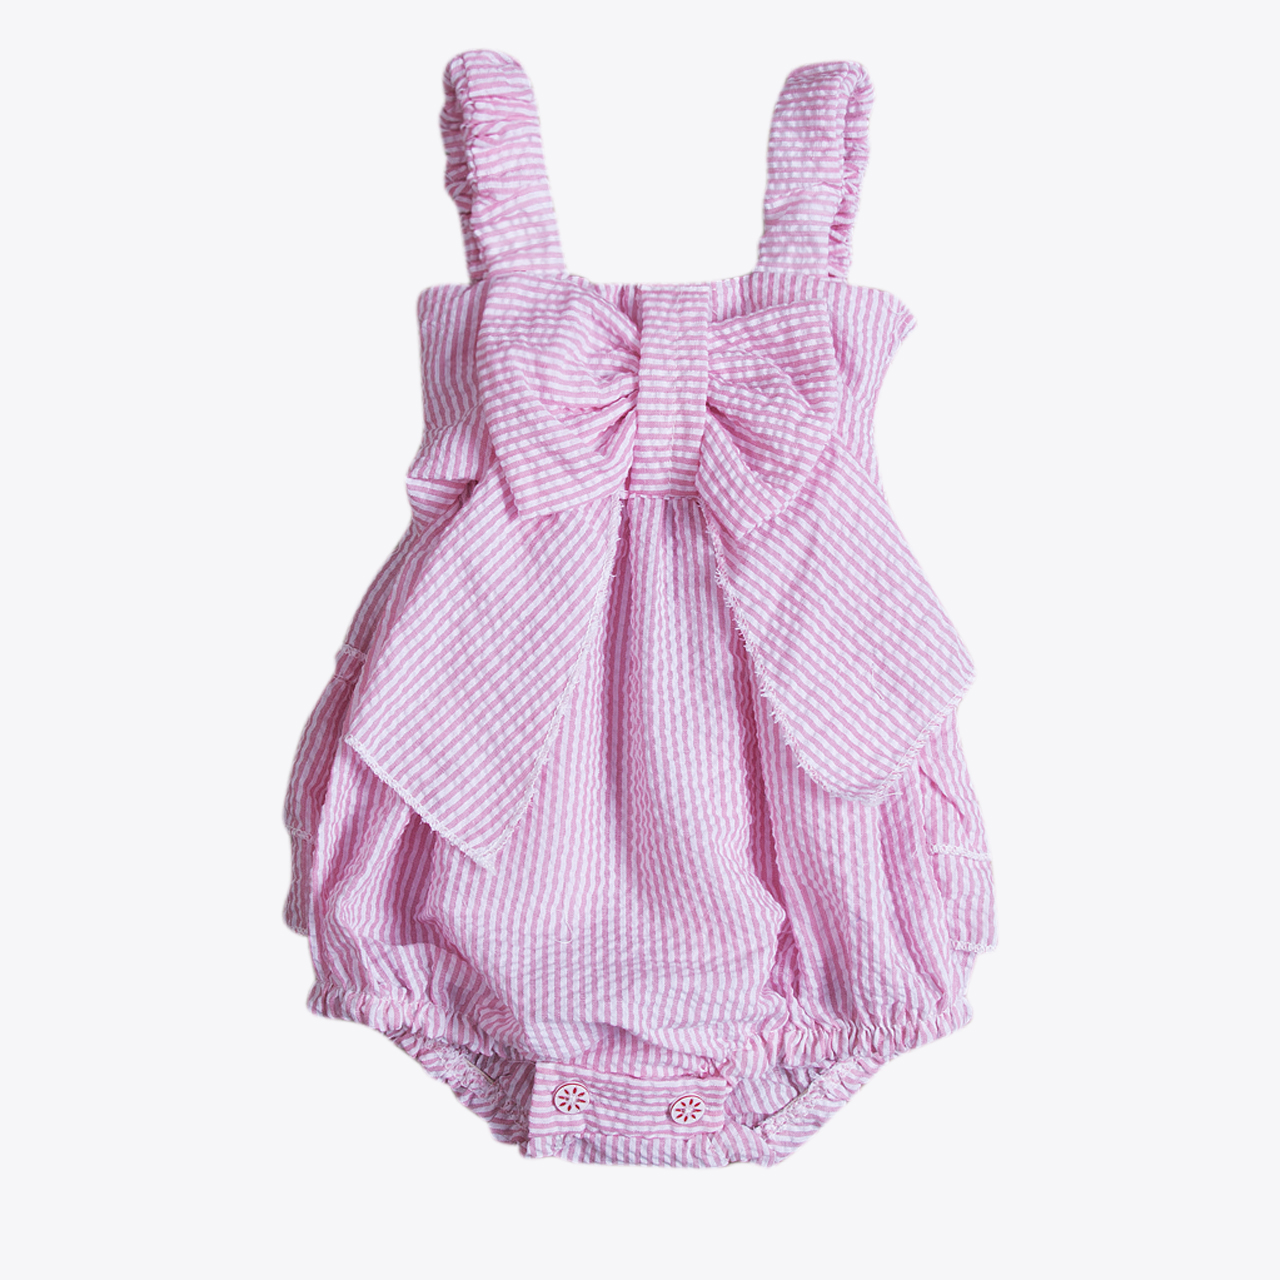 Summer Newborn Infant Baby Girl Holiday Casual Bodysuit Jumpsuit Outfits Sunsuit Sweet Cute Clothes emmababy summer newborn infant baby girl ruffles sleeveless romper flamingo jumpsuit sunsuit clothes outfits baby clothing